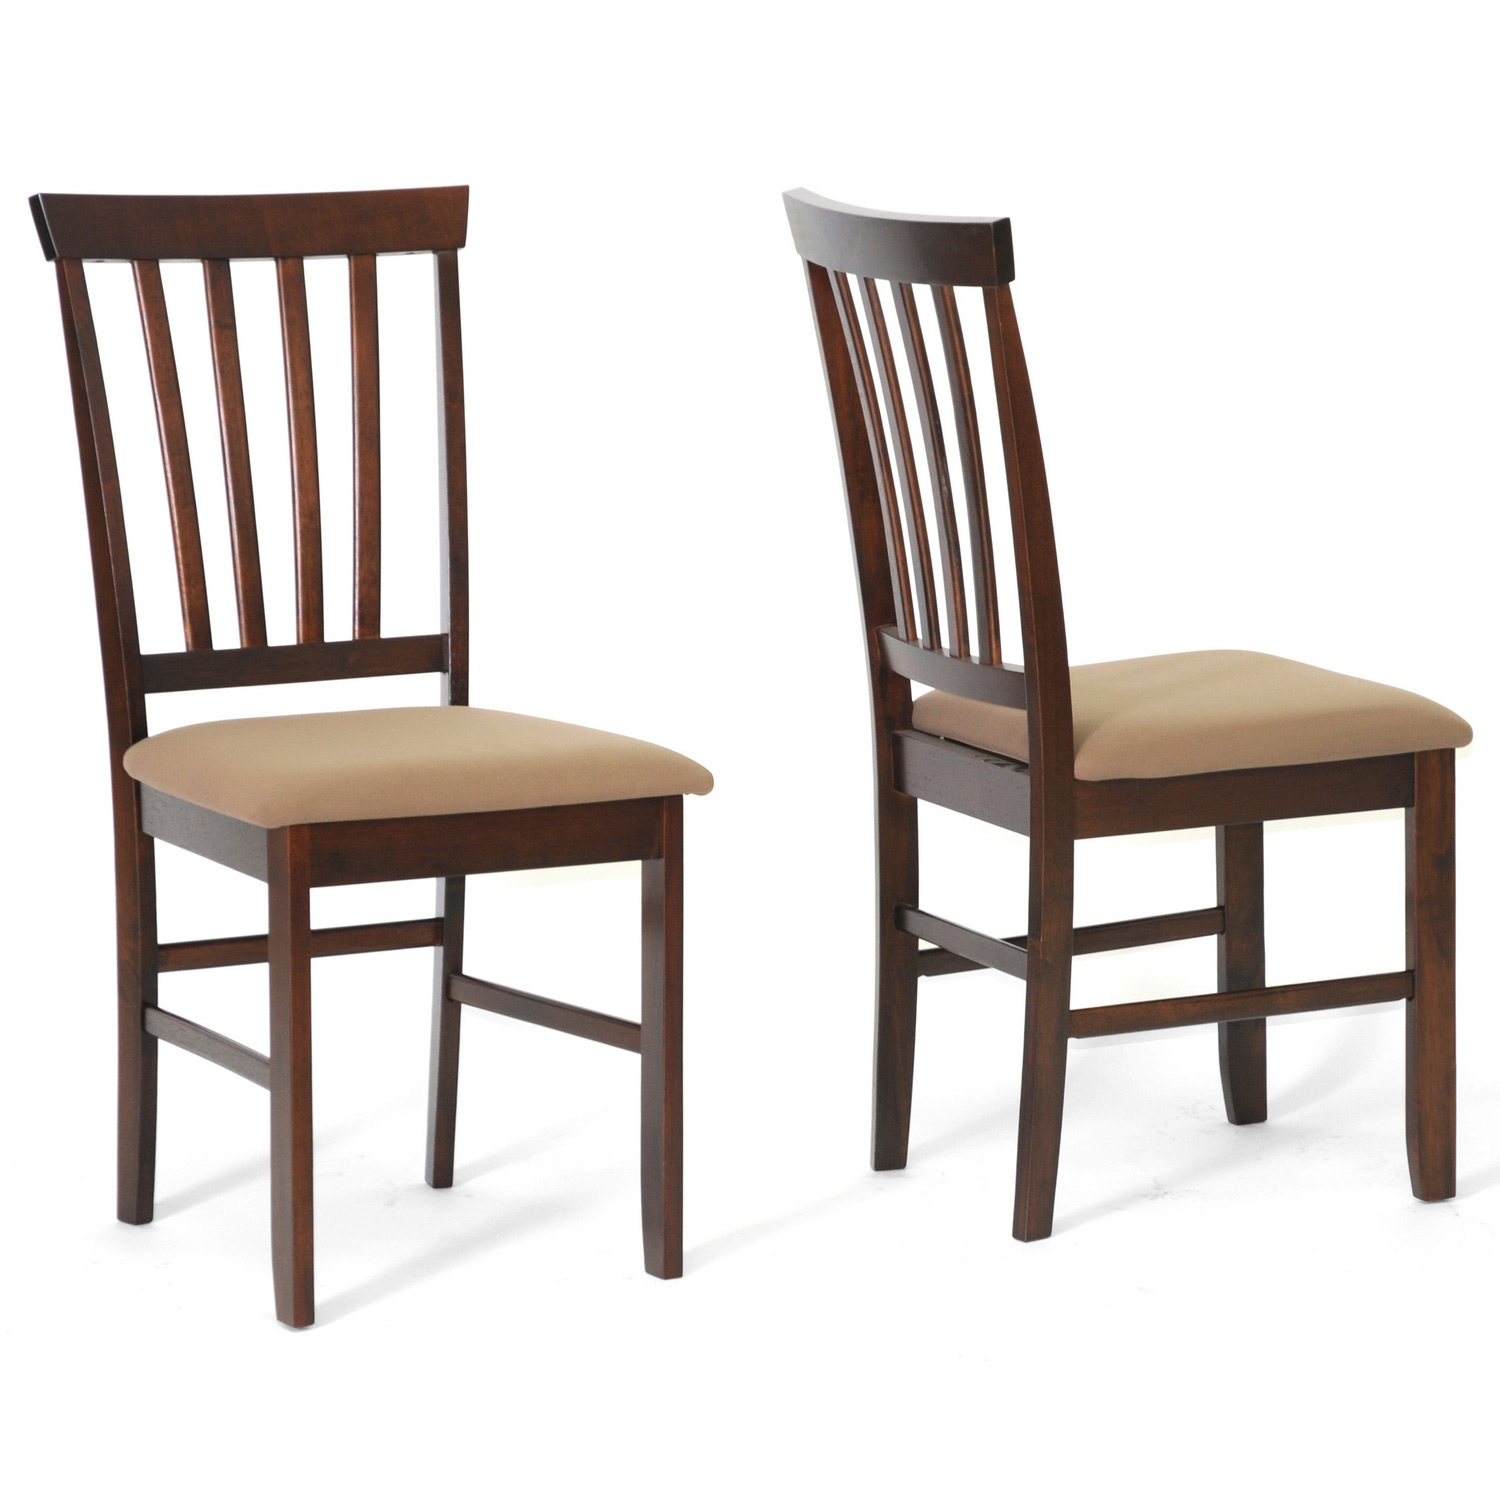 Tiffany Brown Wood Modern Dining Chairs Set Of 2 By